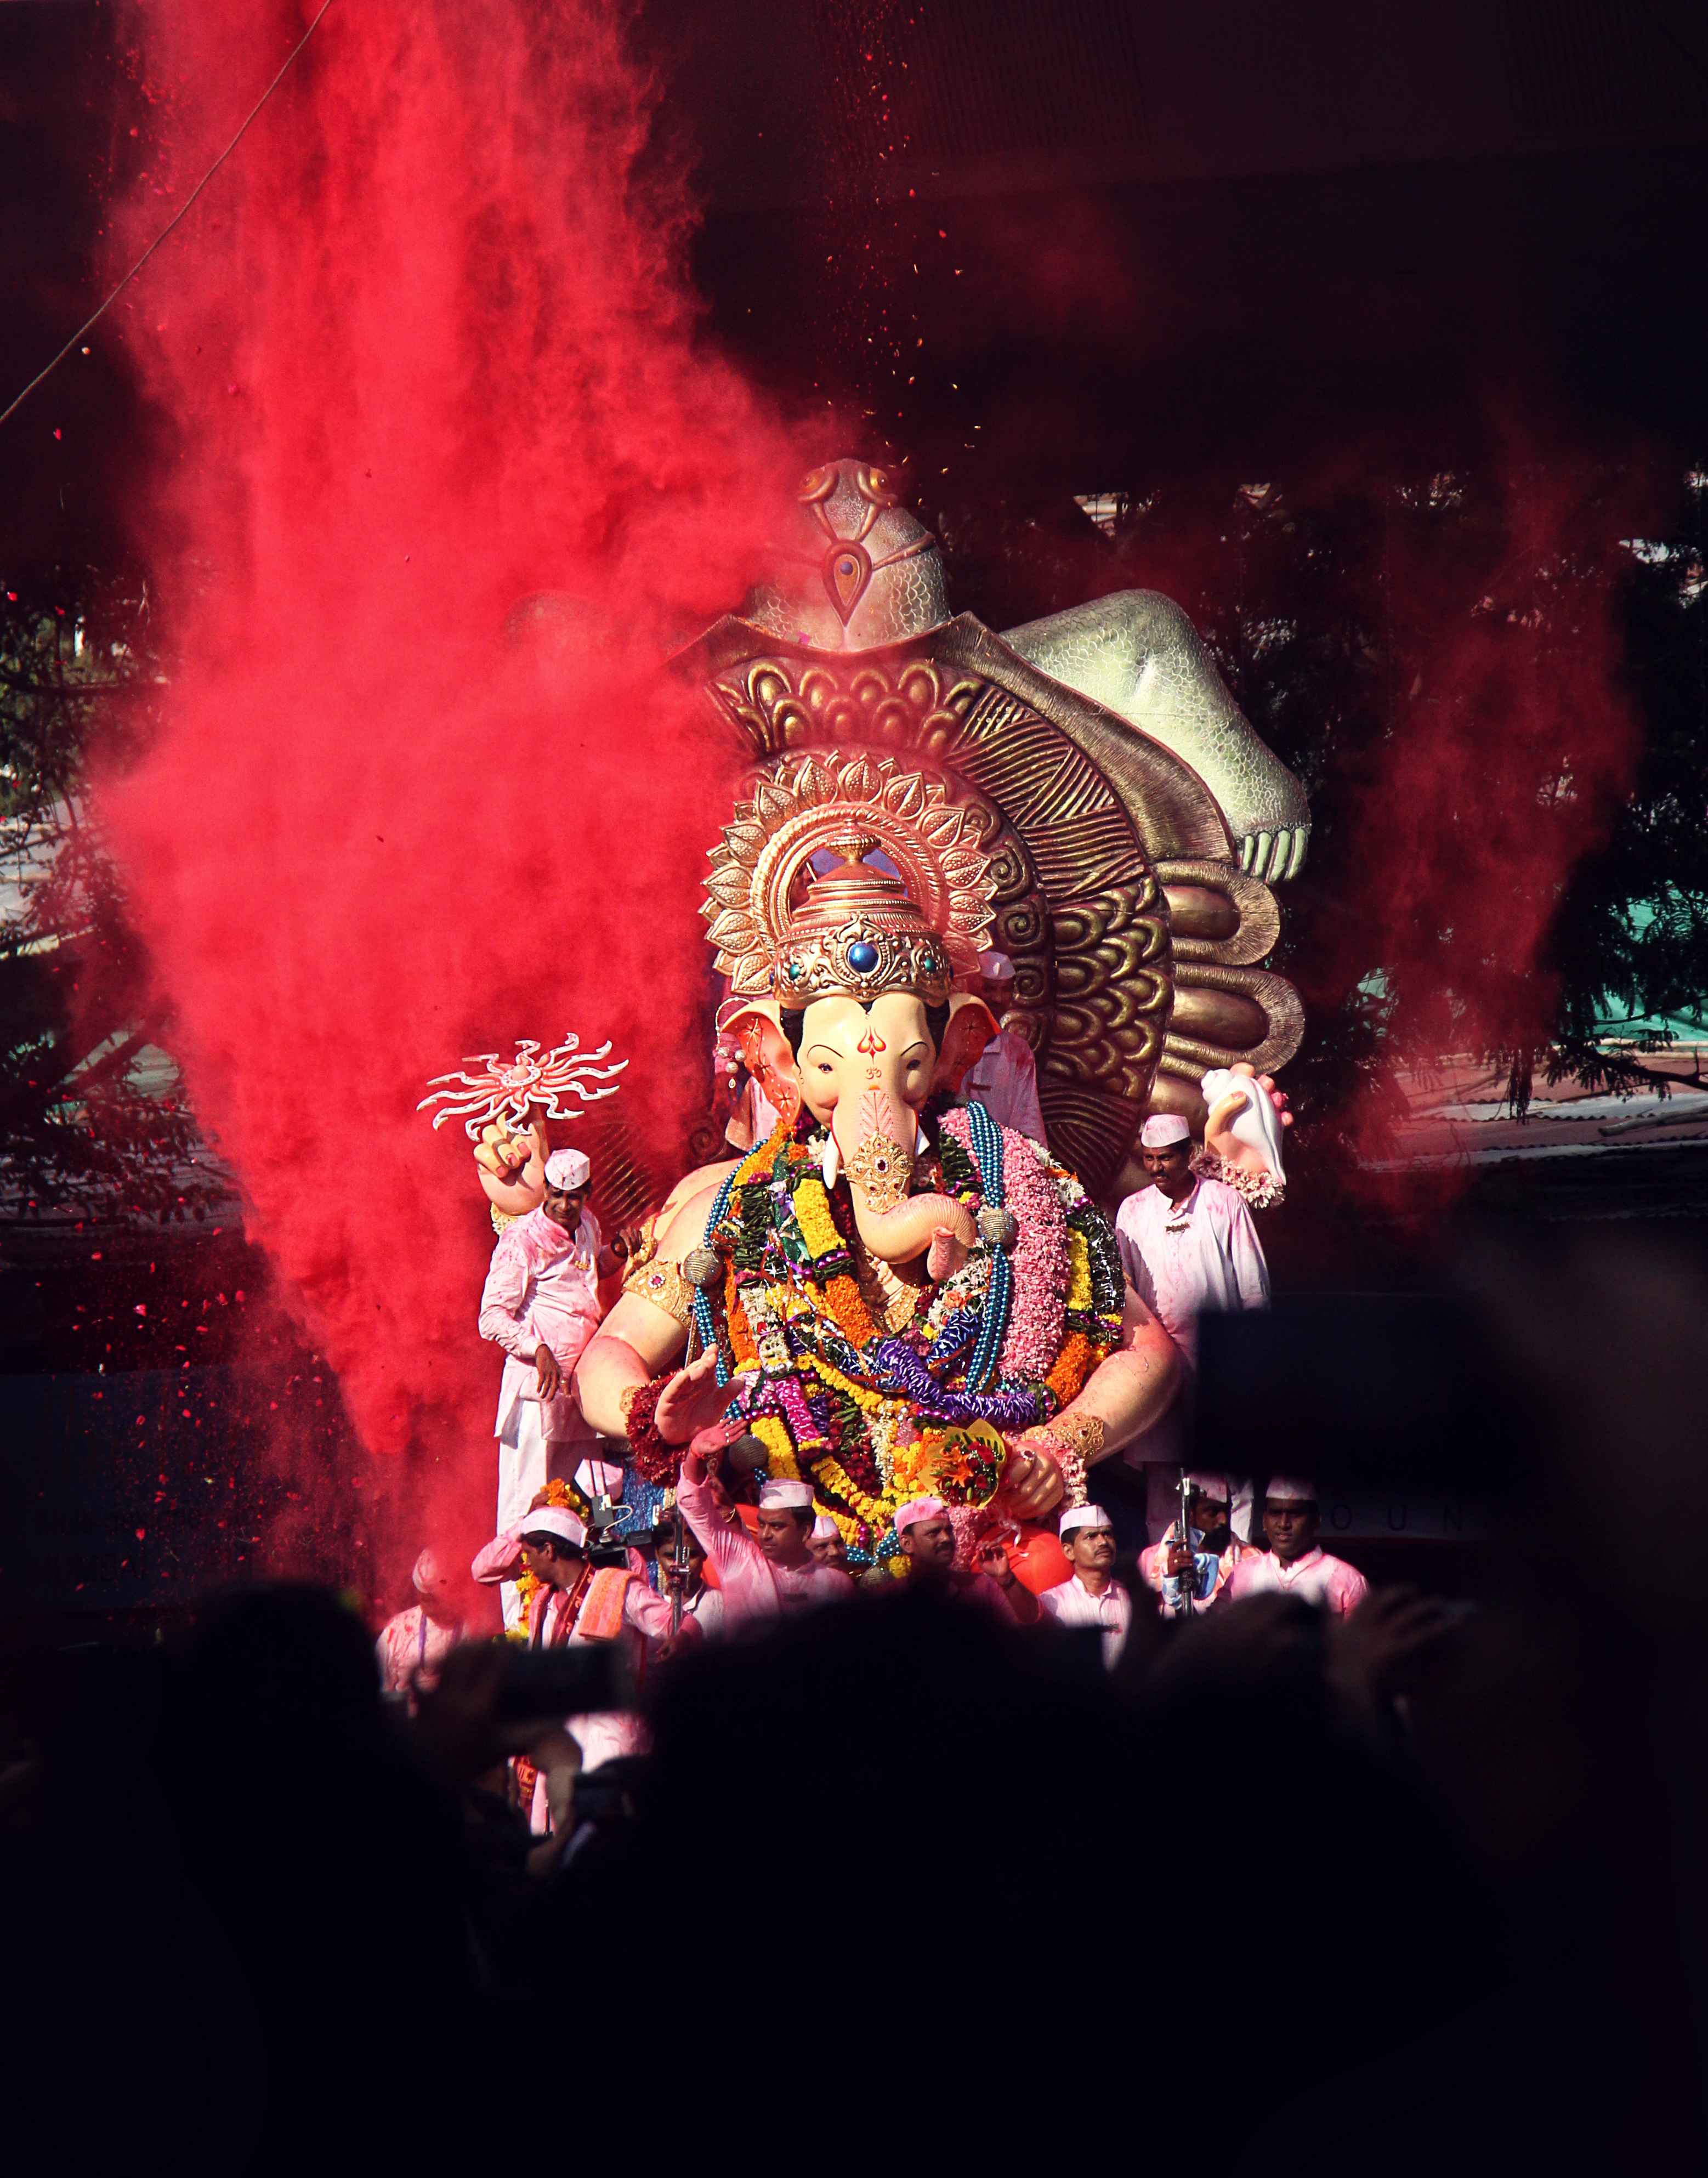 Lord Wallpaper Hd Download 500 Ganpati Pictures Hd Download Free Images On Unsplash